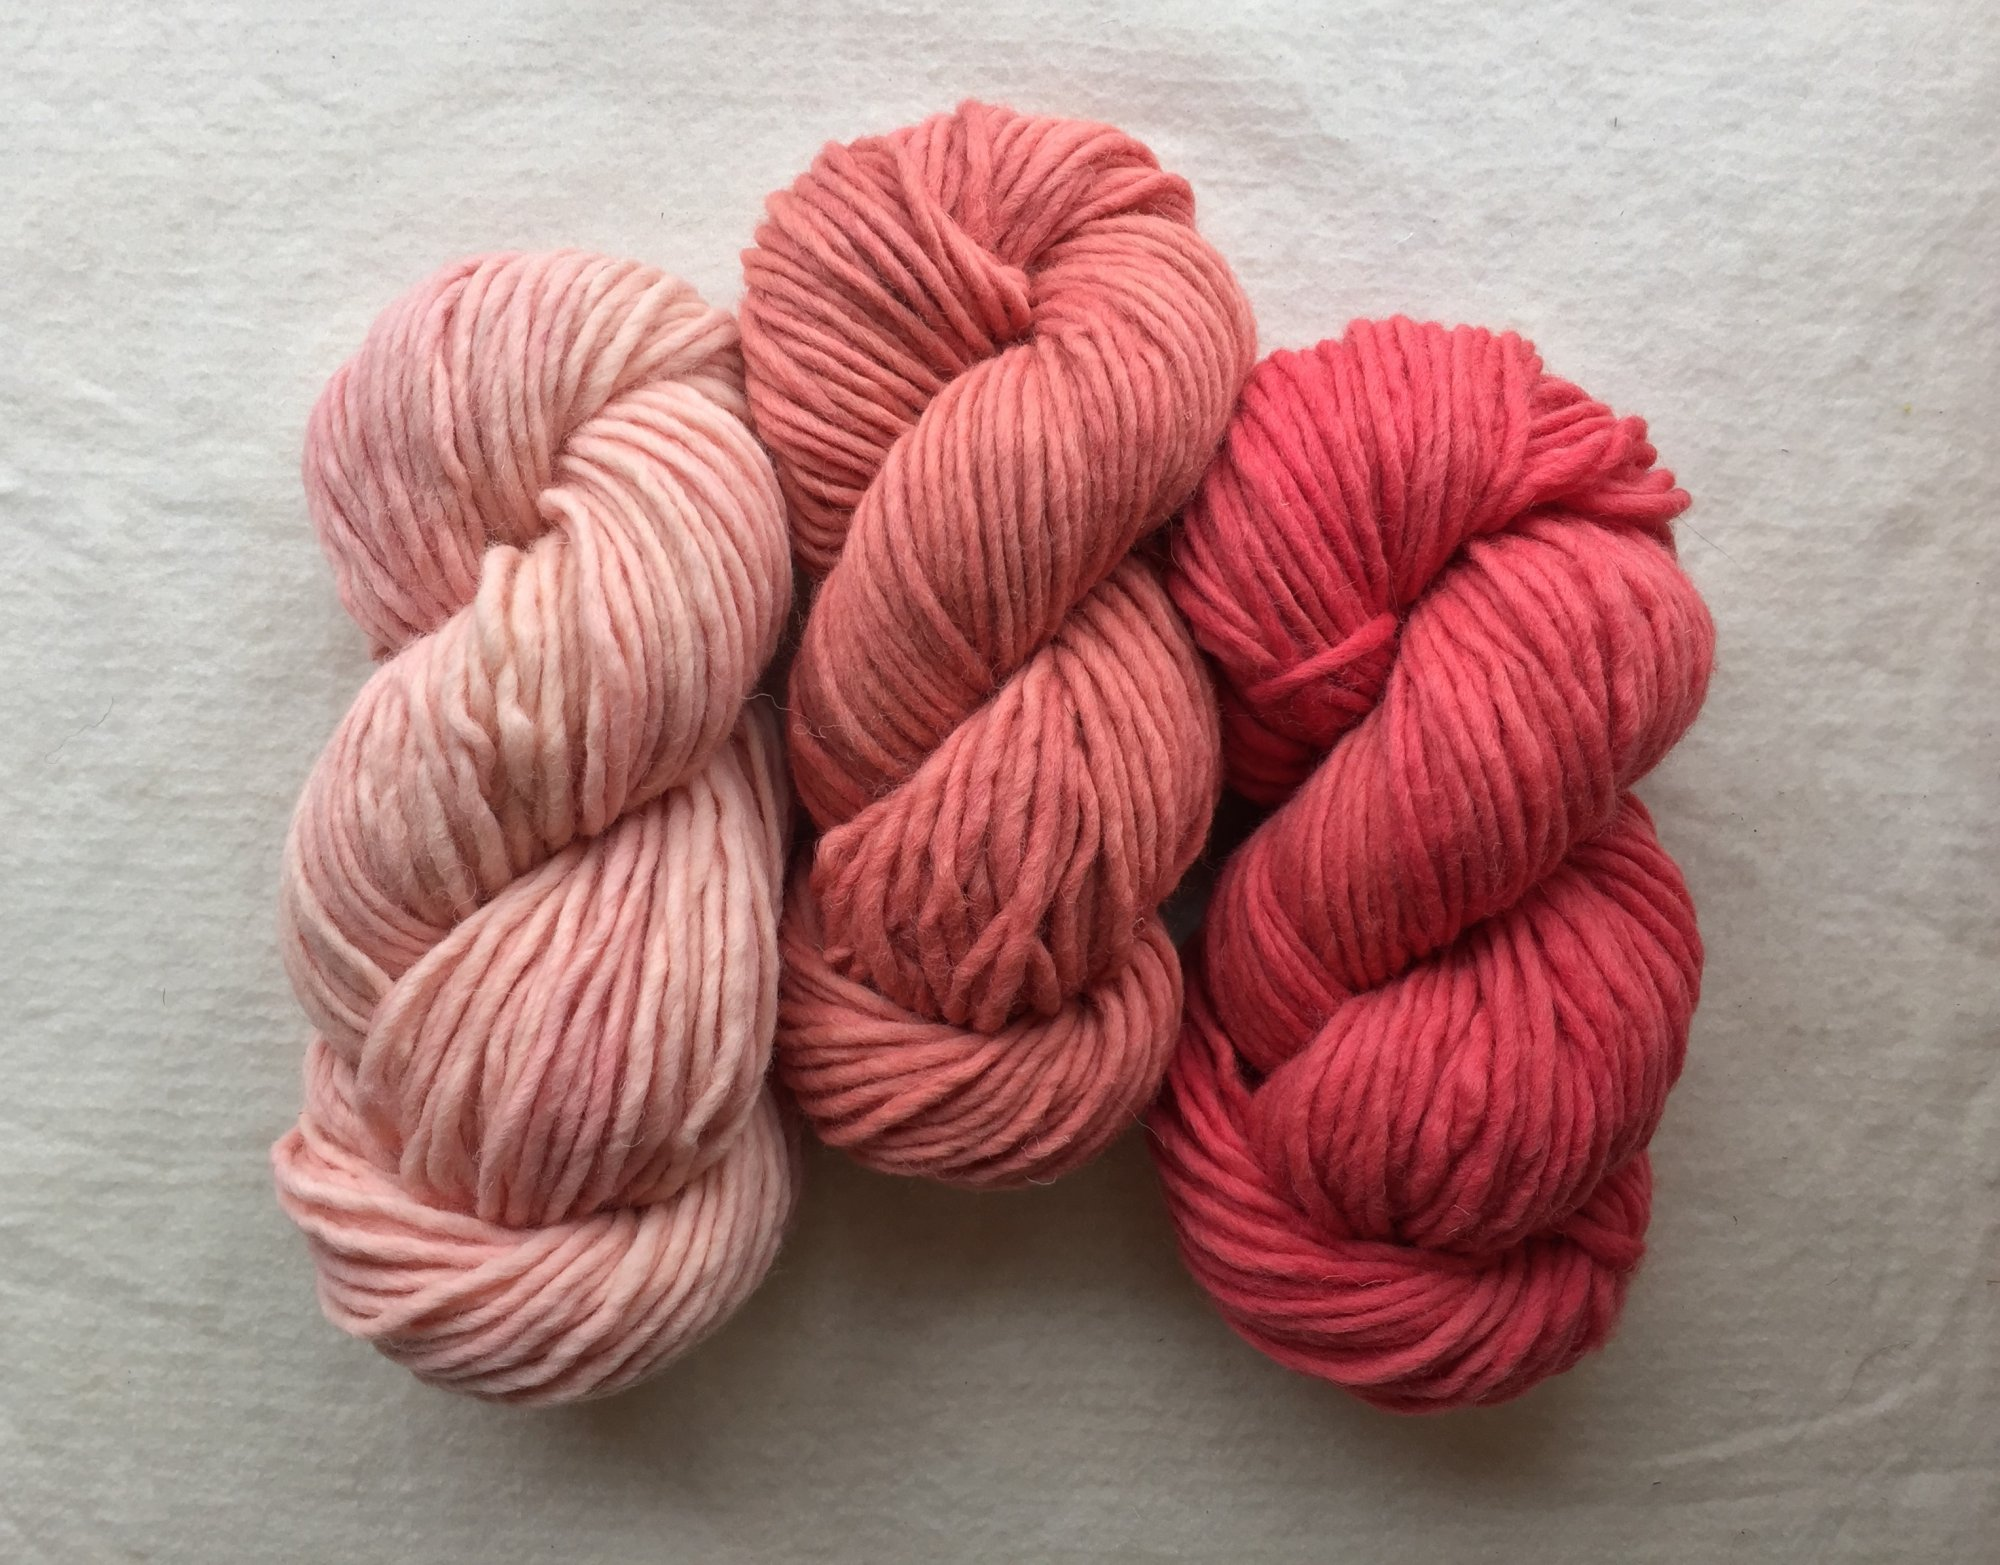 Magne by Pindrop Fibers - Botanically Dyed